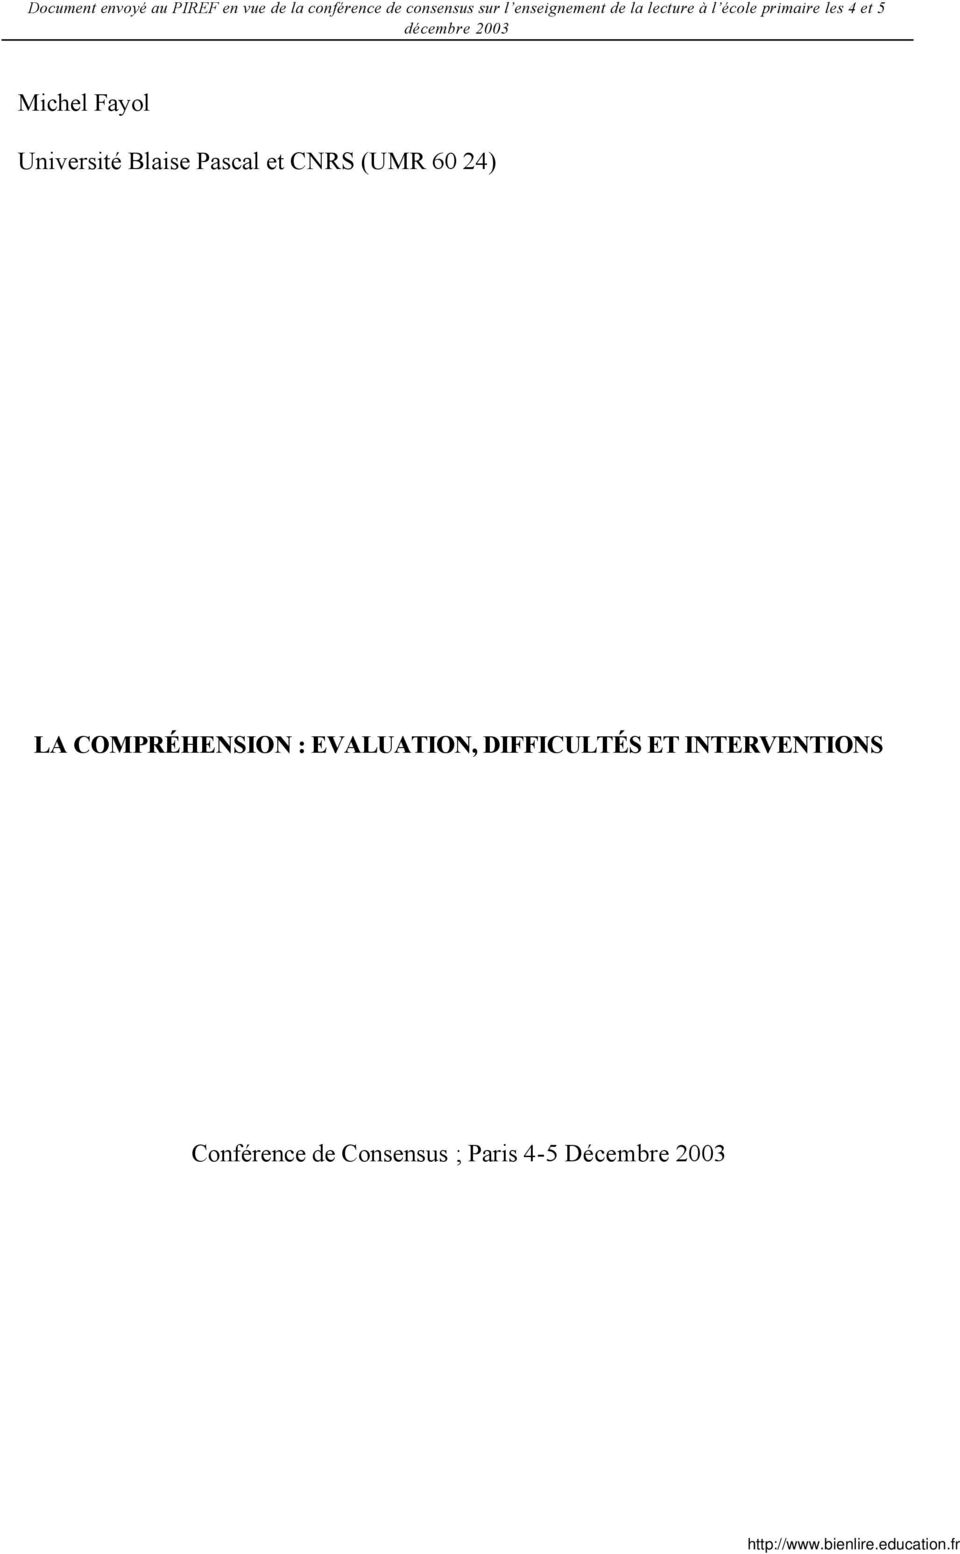 EVALUATION, DIFFICULTÉS ET INTERVENTIONS